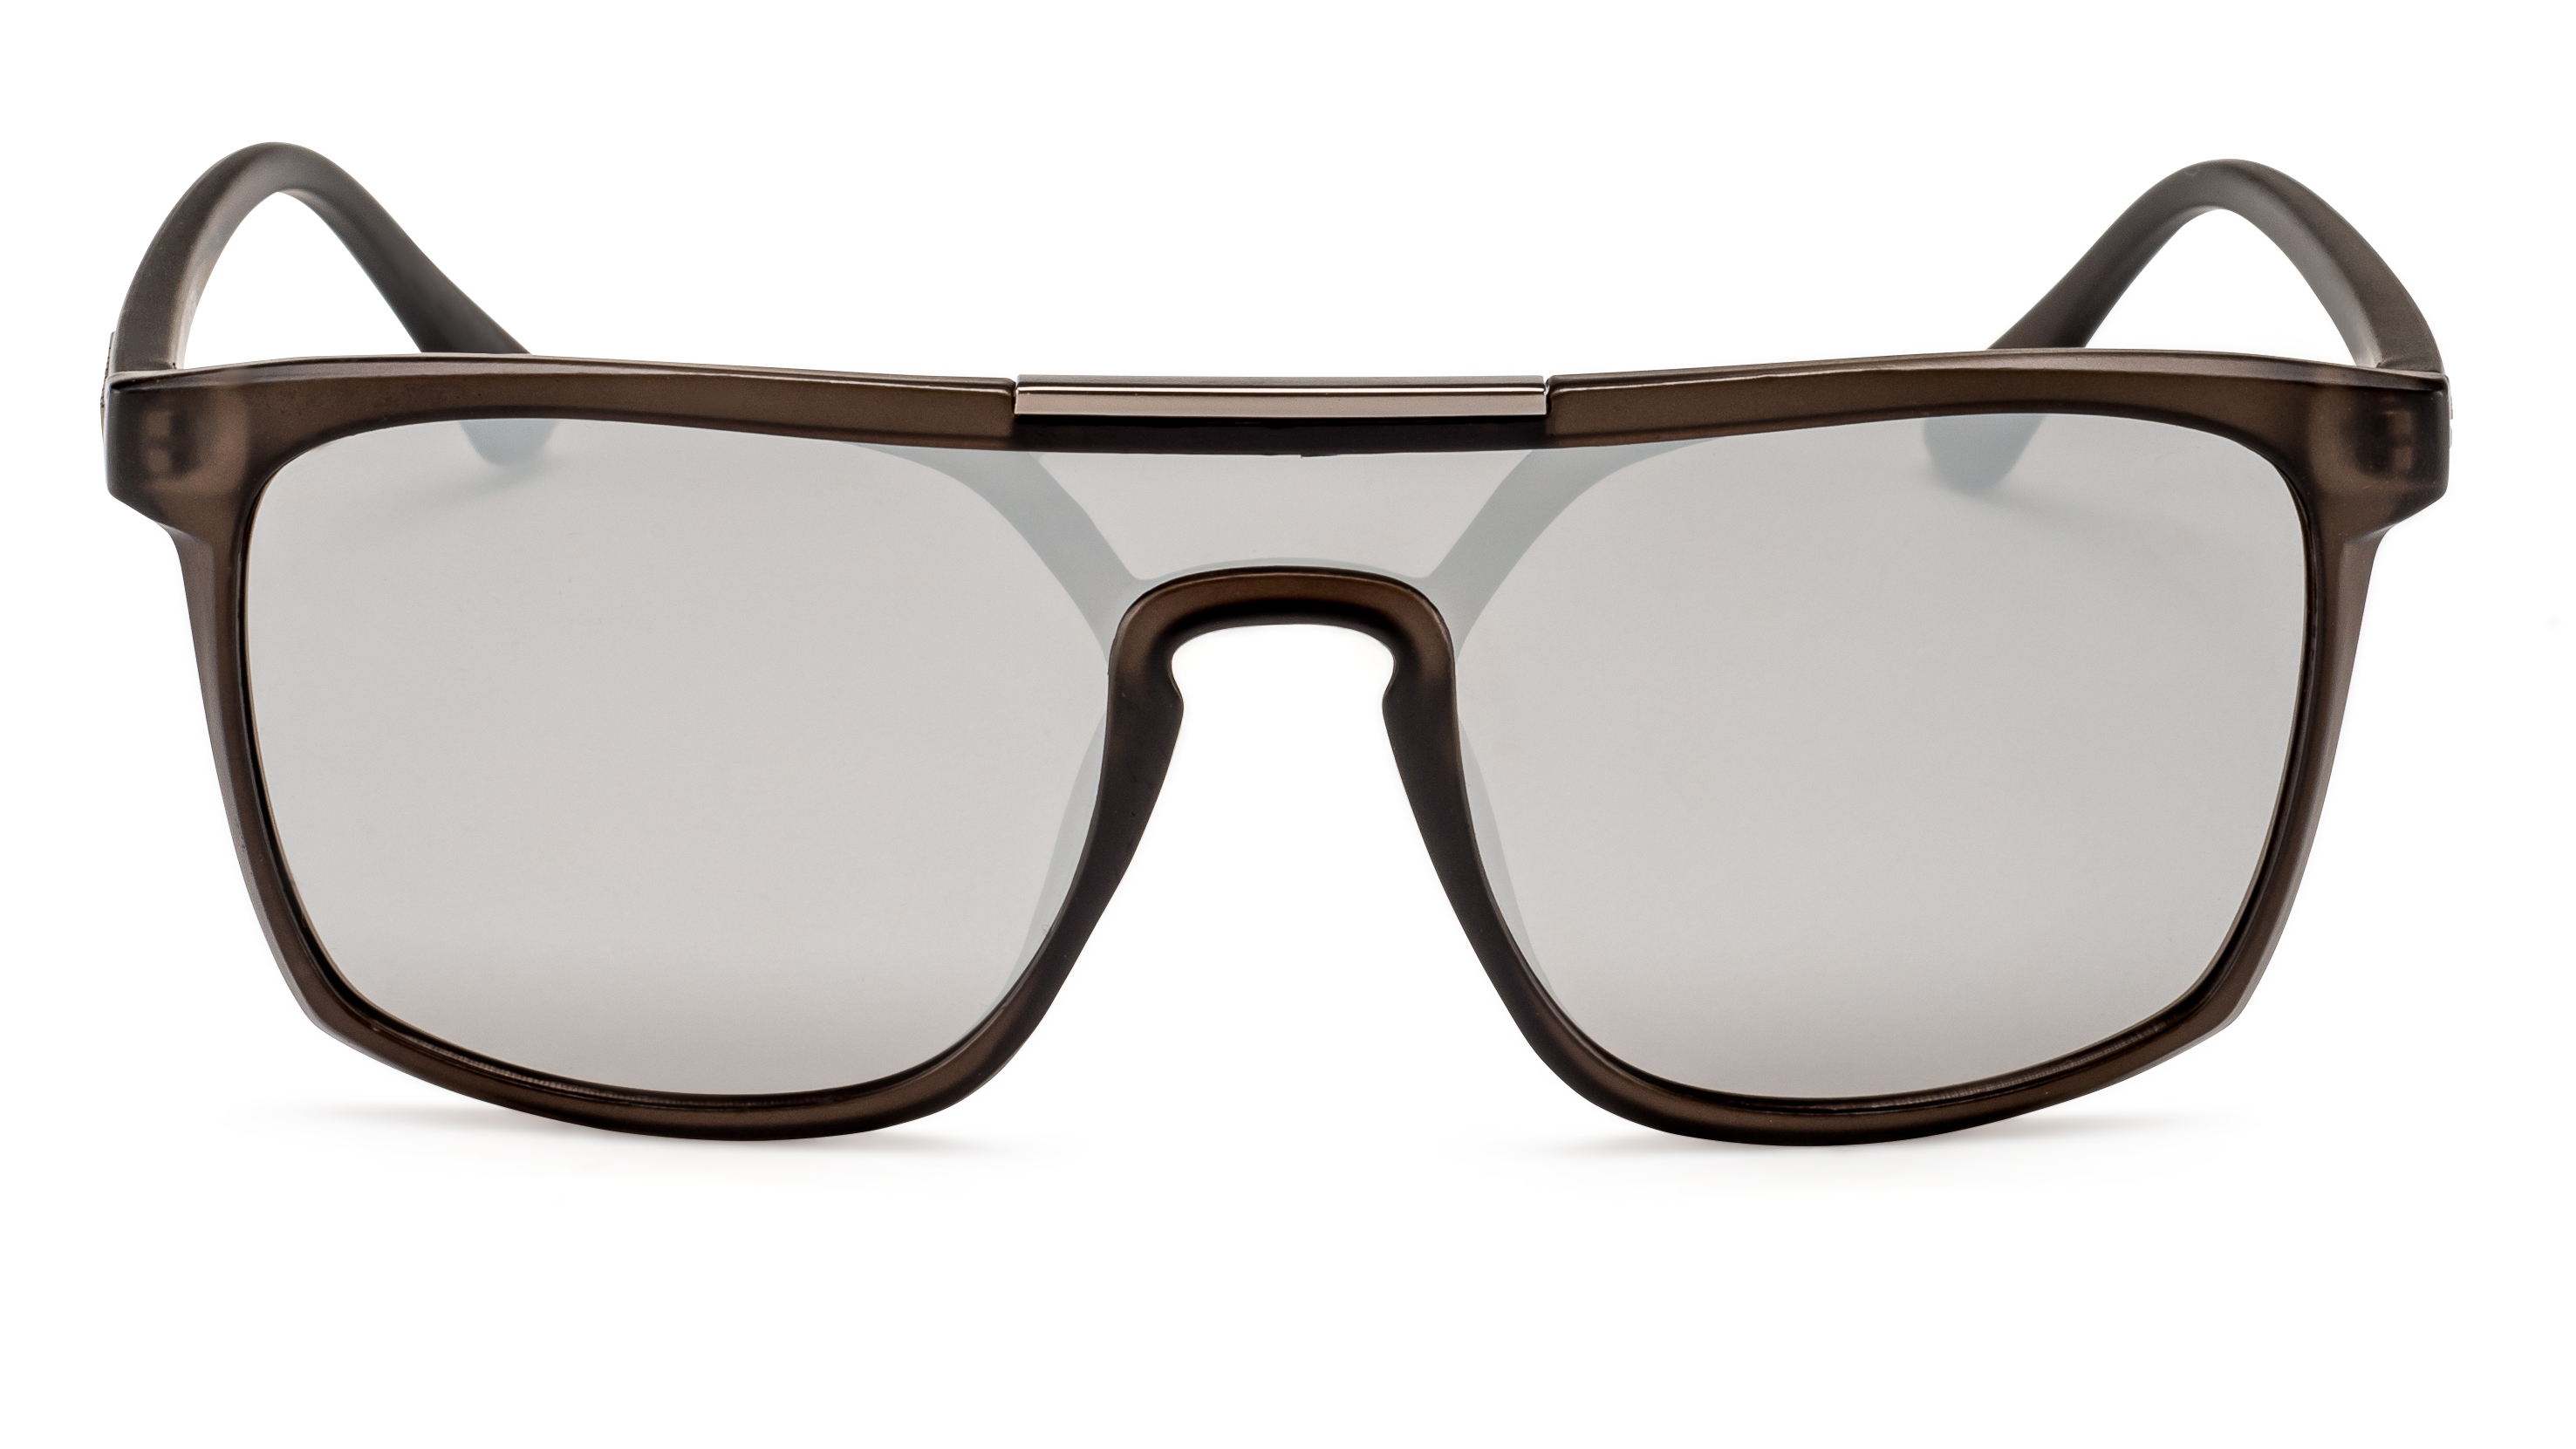 Front view sunglasses 3001019